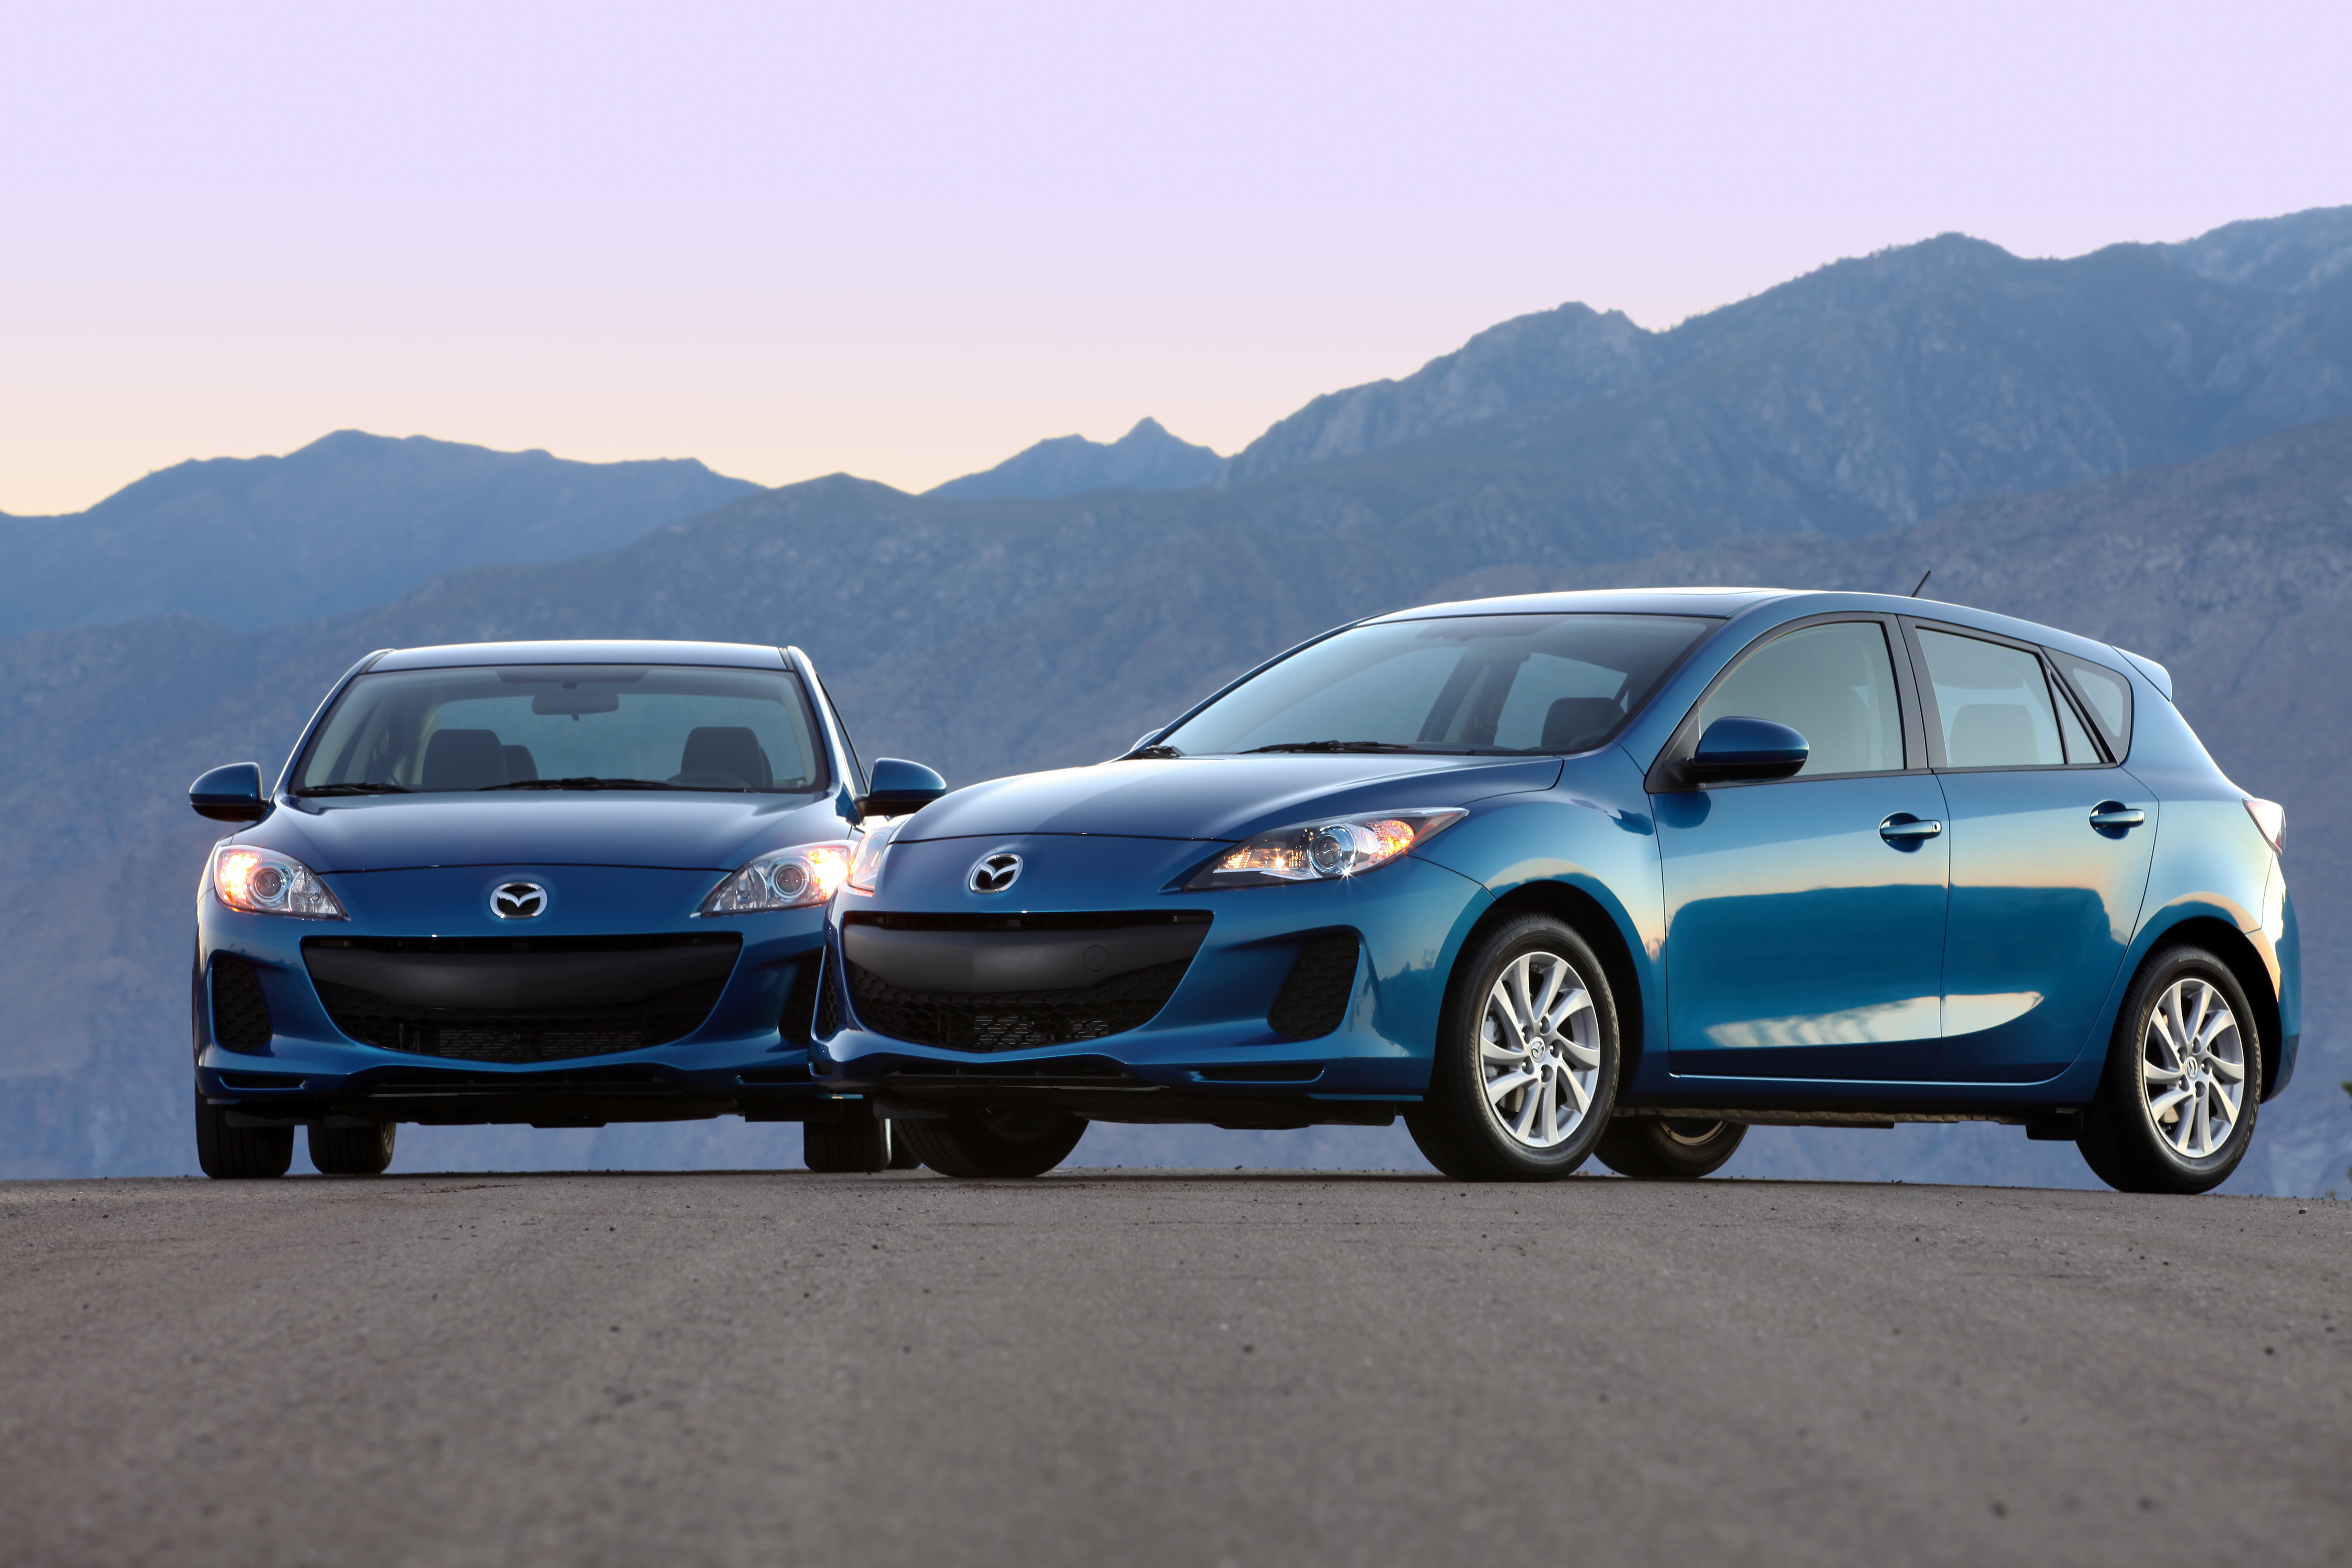 2012 Mazda3 With SKYACTIV Technology Review and Roadtest by